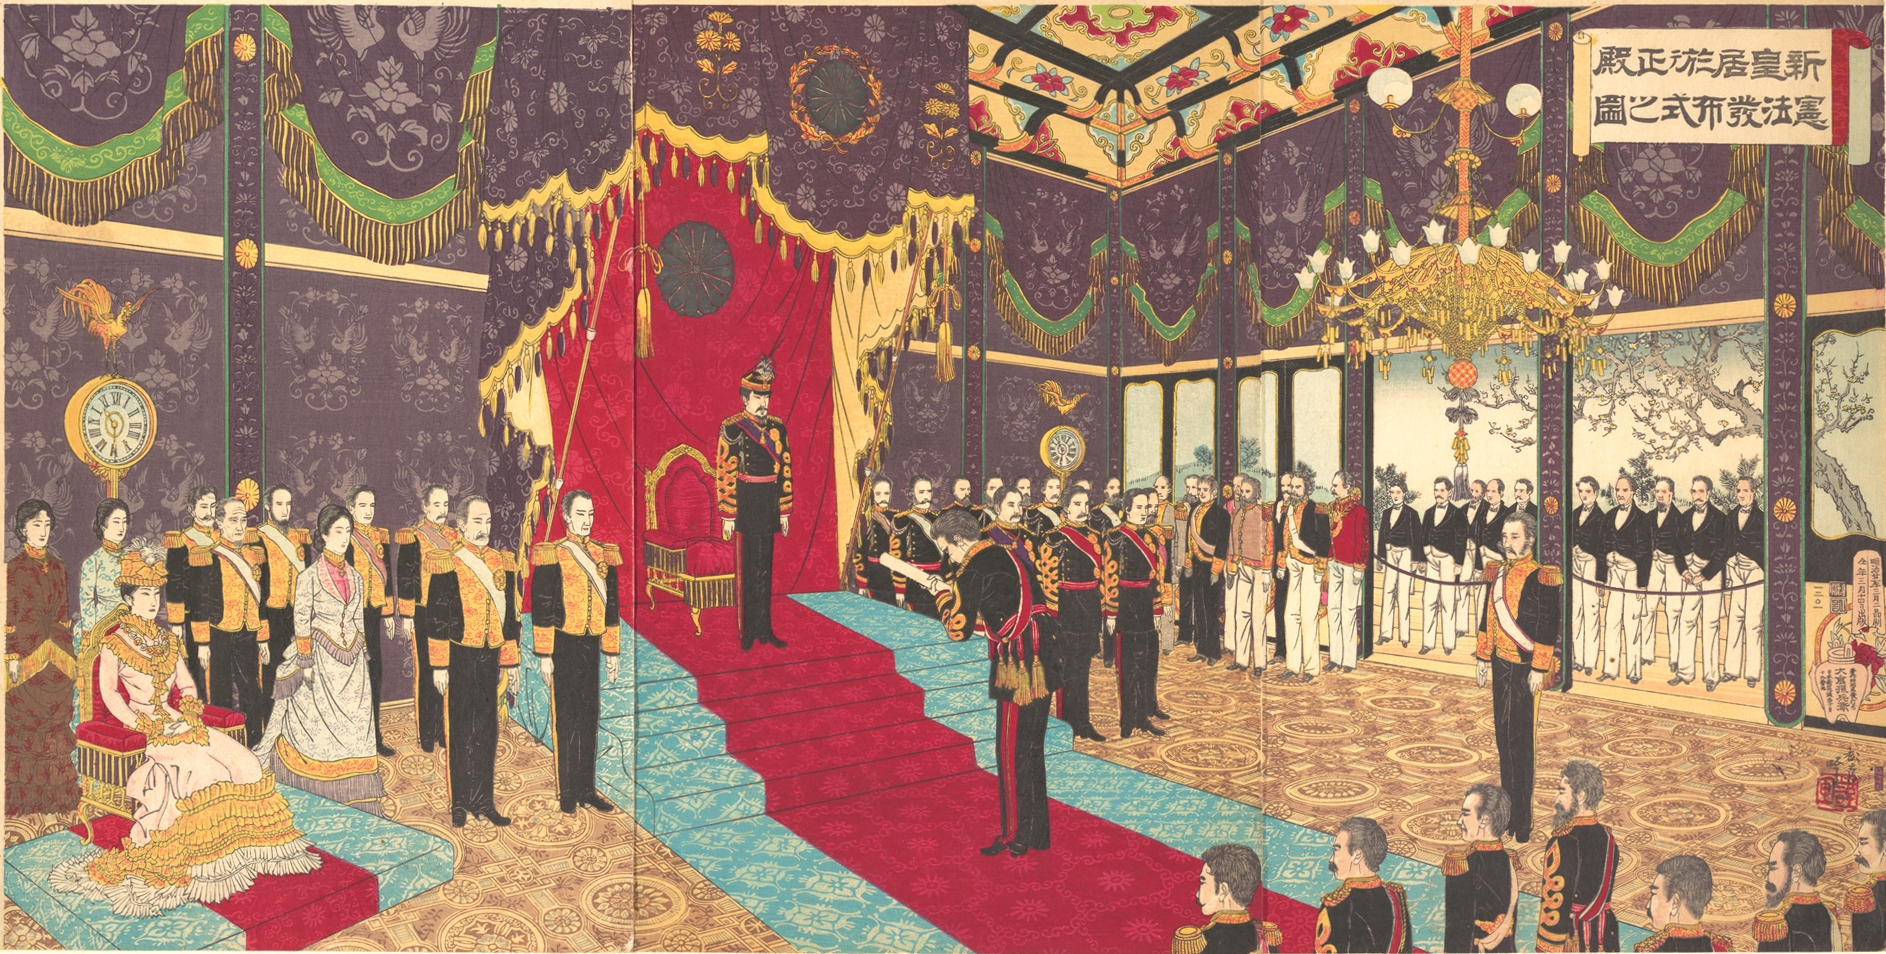 The Meiji Restoration and Modernization